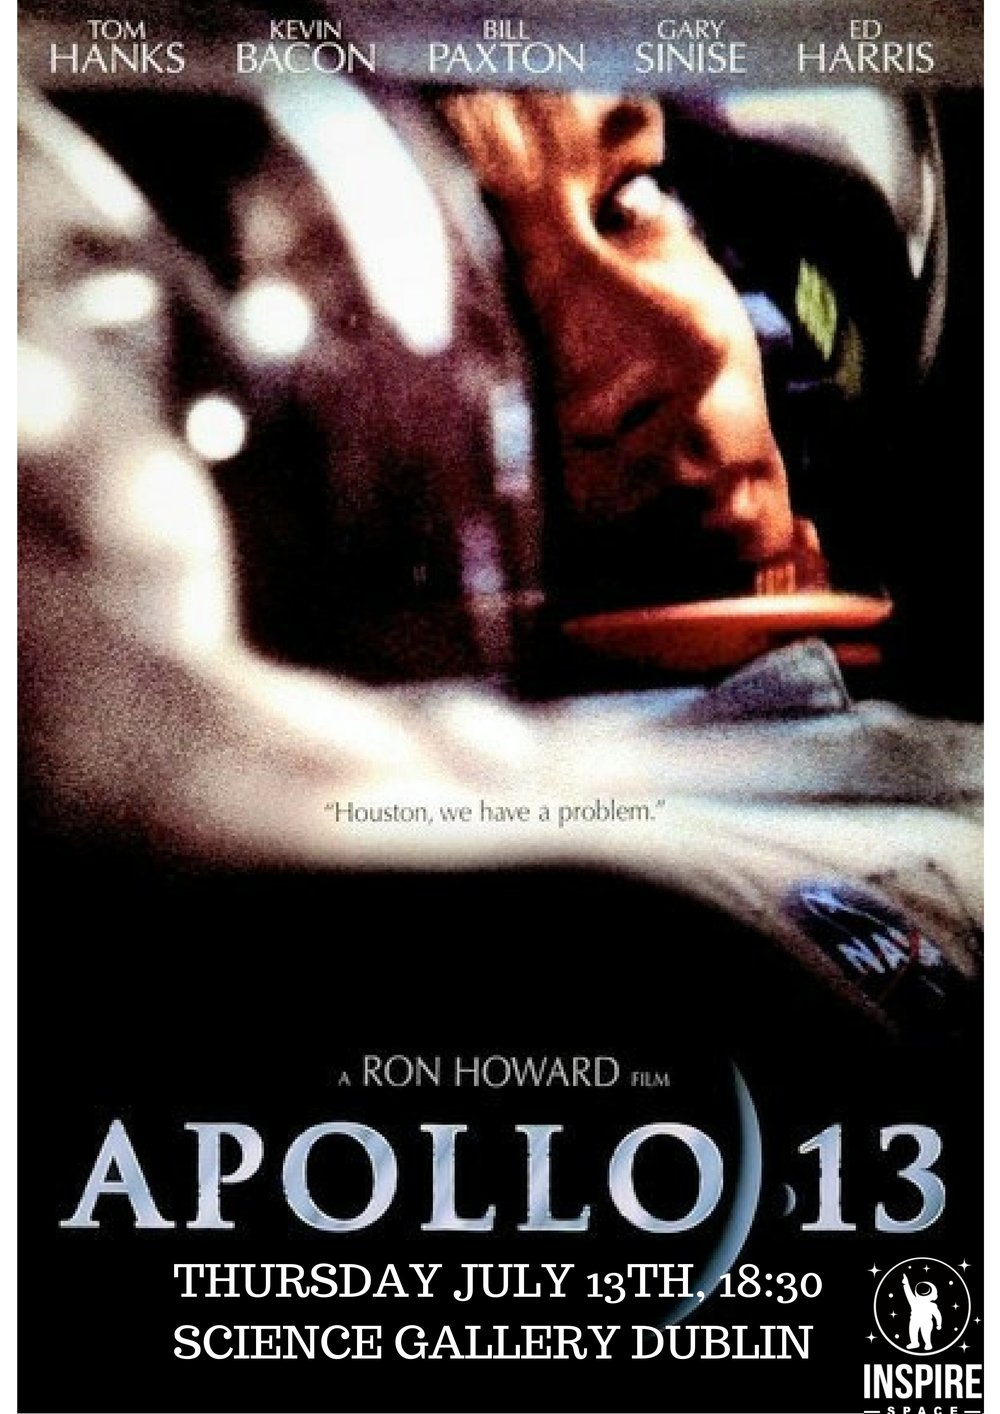 Apollo 13 (1995) APOLLO 13 Join us on July 13th to watch Apollo 13 in the PACCAR Theatre, Science Gallery Dublin Tickets Coming Soon...